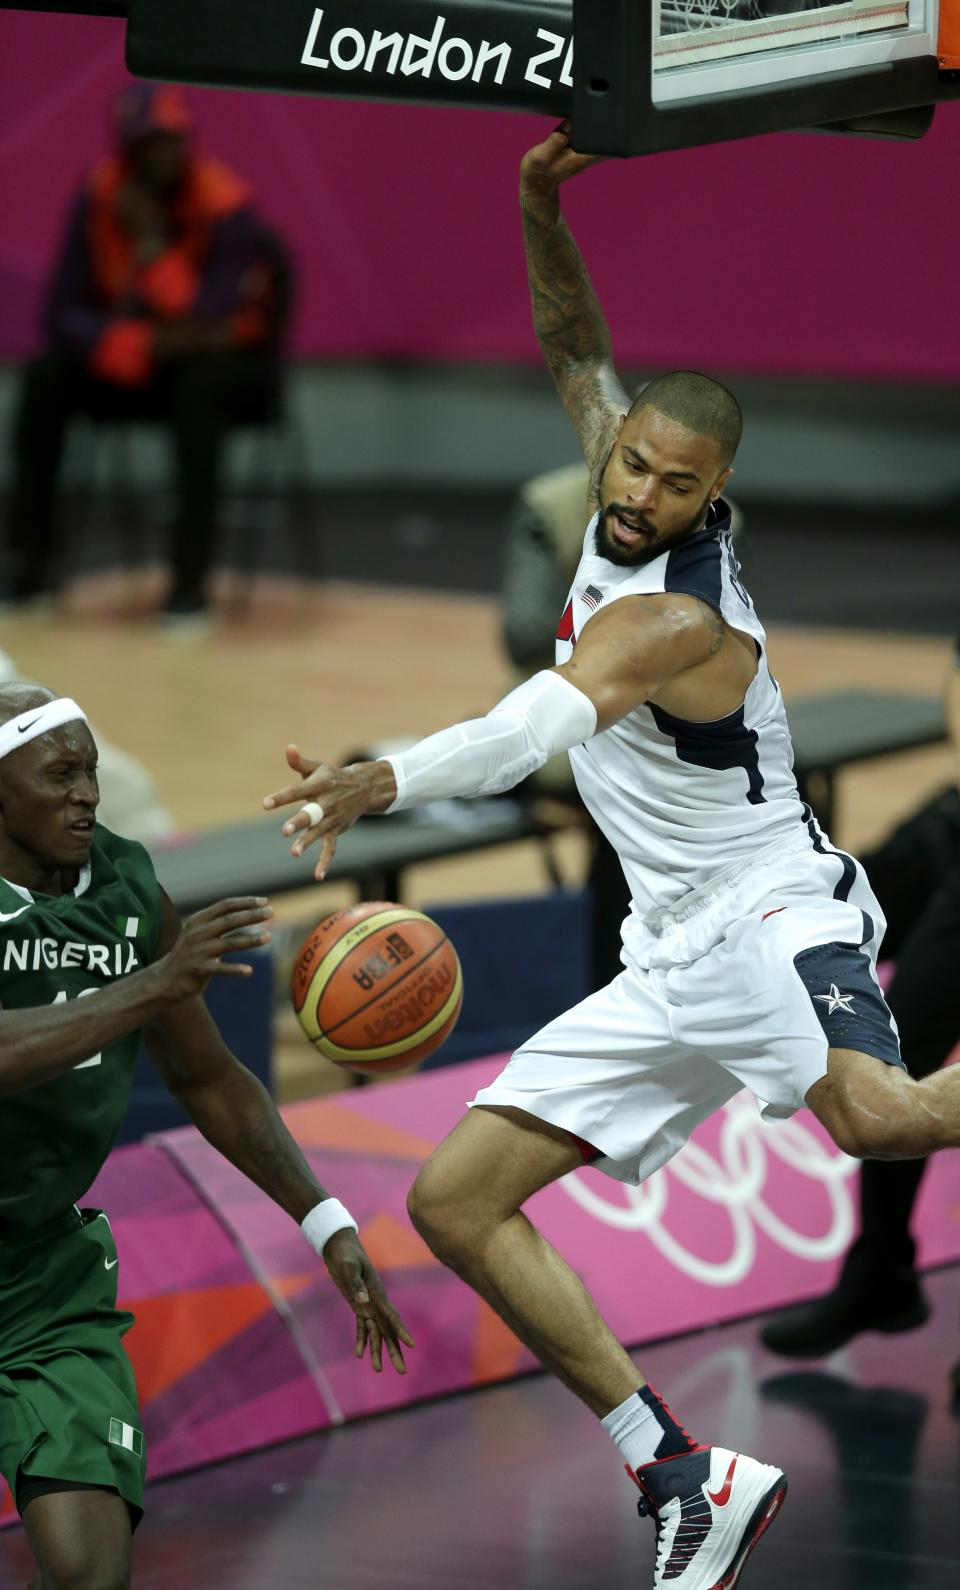 United States' Tyson Chandler, right, tries to block a pass by Nigeria's Ejike Ugboaja during a men's basketball game at the 2012 Summer Olympics, Thursday, Aug. 2, 2012, in London. (AP Photo/Charlie Riedel)